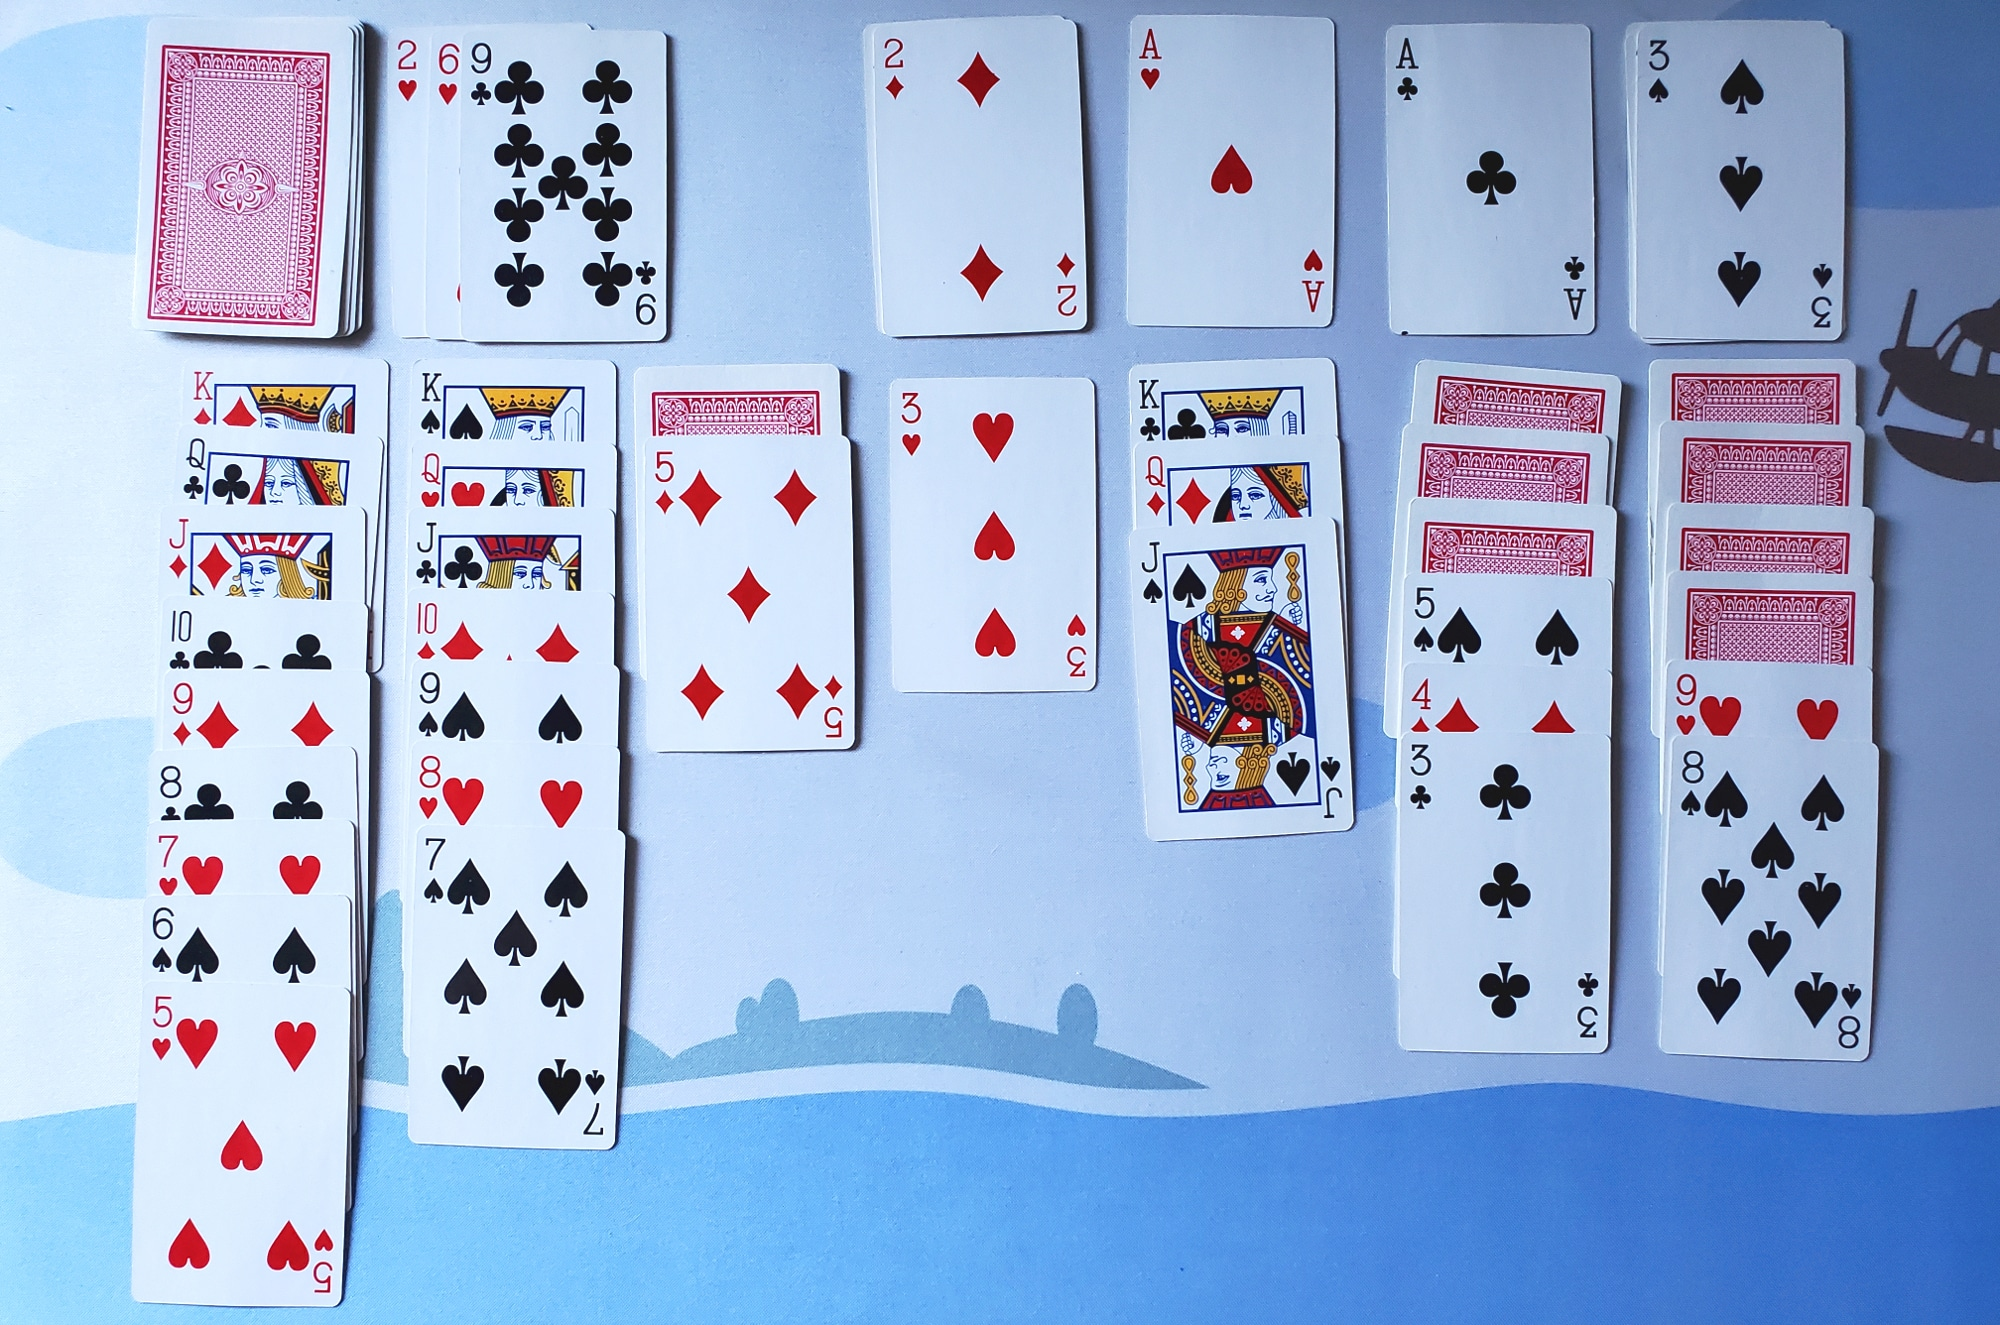 a game of solitaire is played with real cards on a table